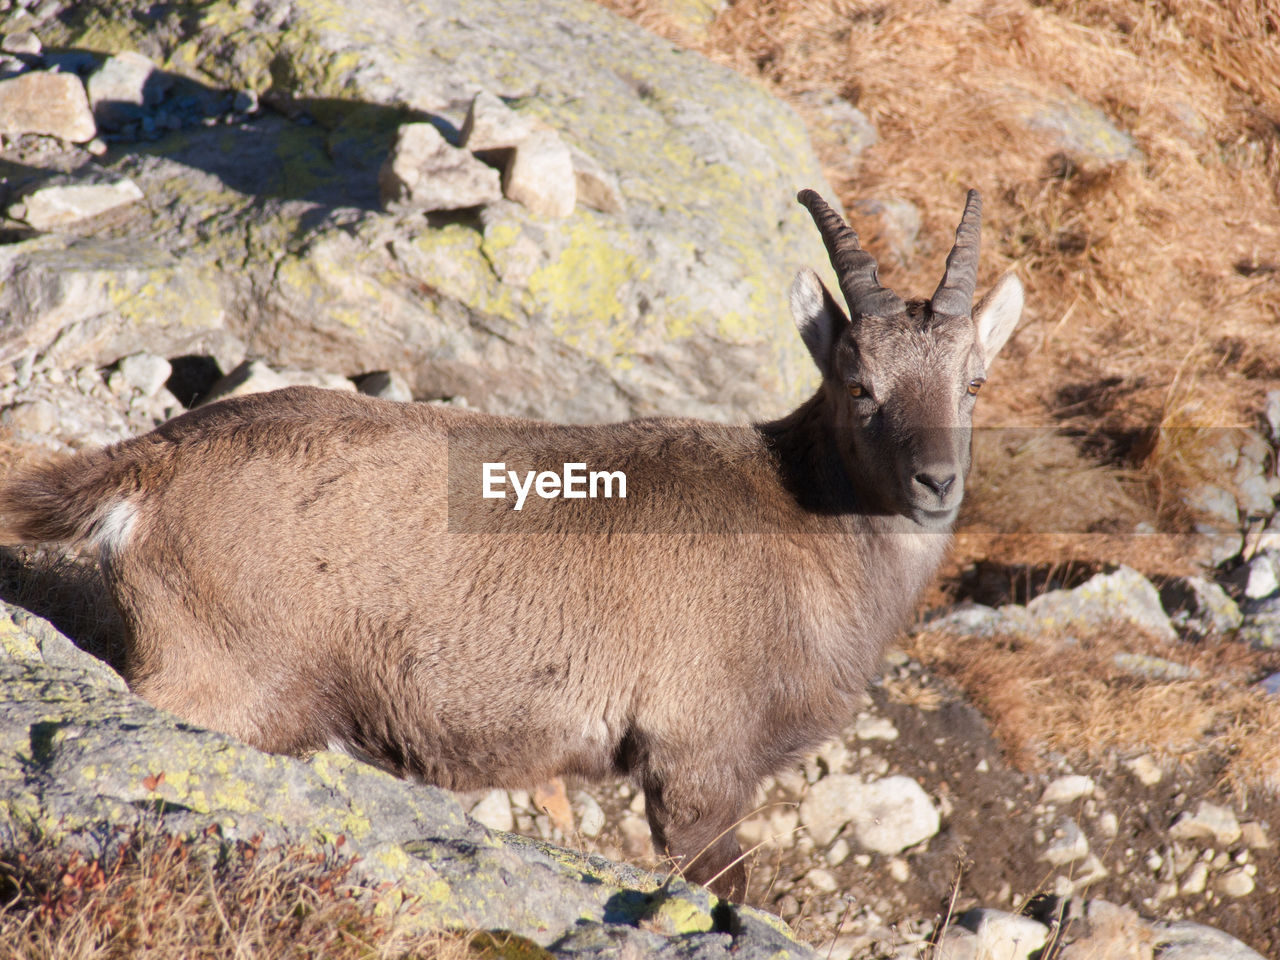 animal wildlife, mammal, animals in the wild, rock, no people, rock - object, solid, nature, one animal, day, land, vertebrate, outdoors, side view, brown, deer, autumn, herbivorous